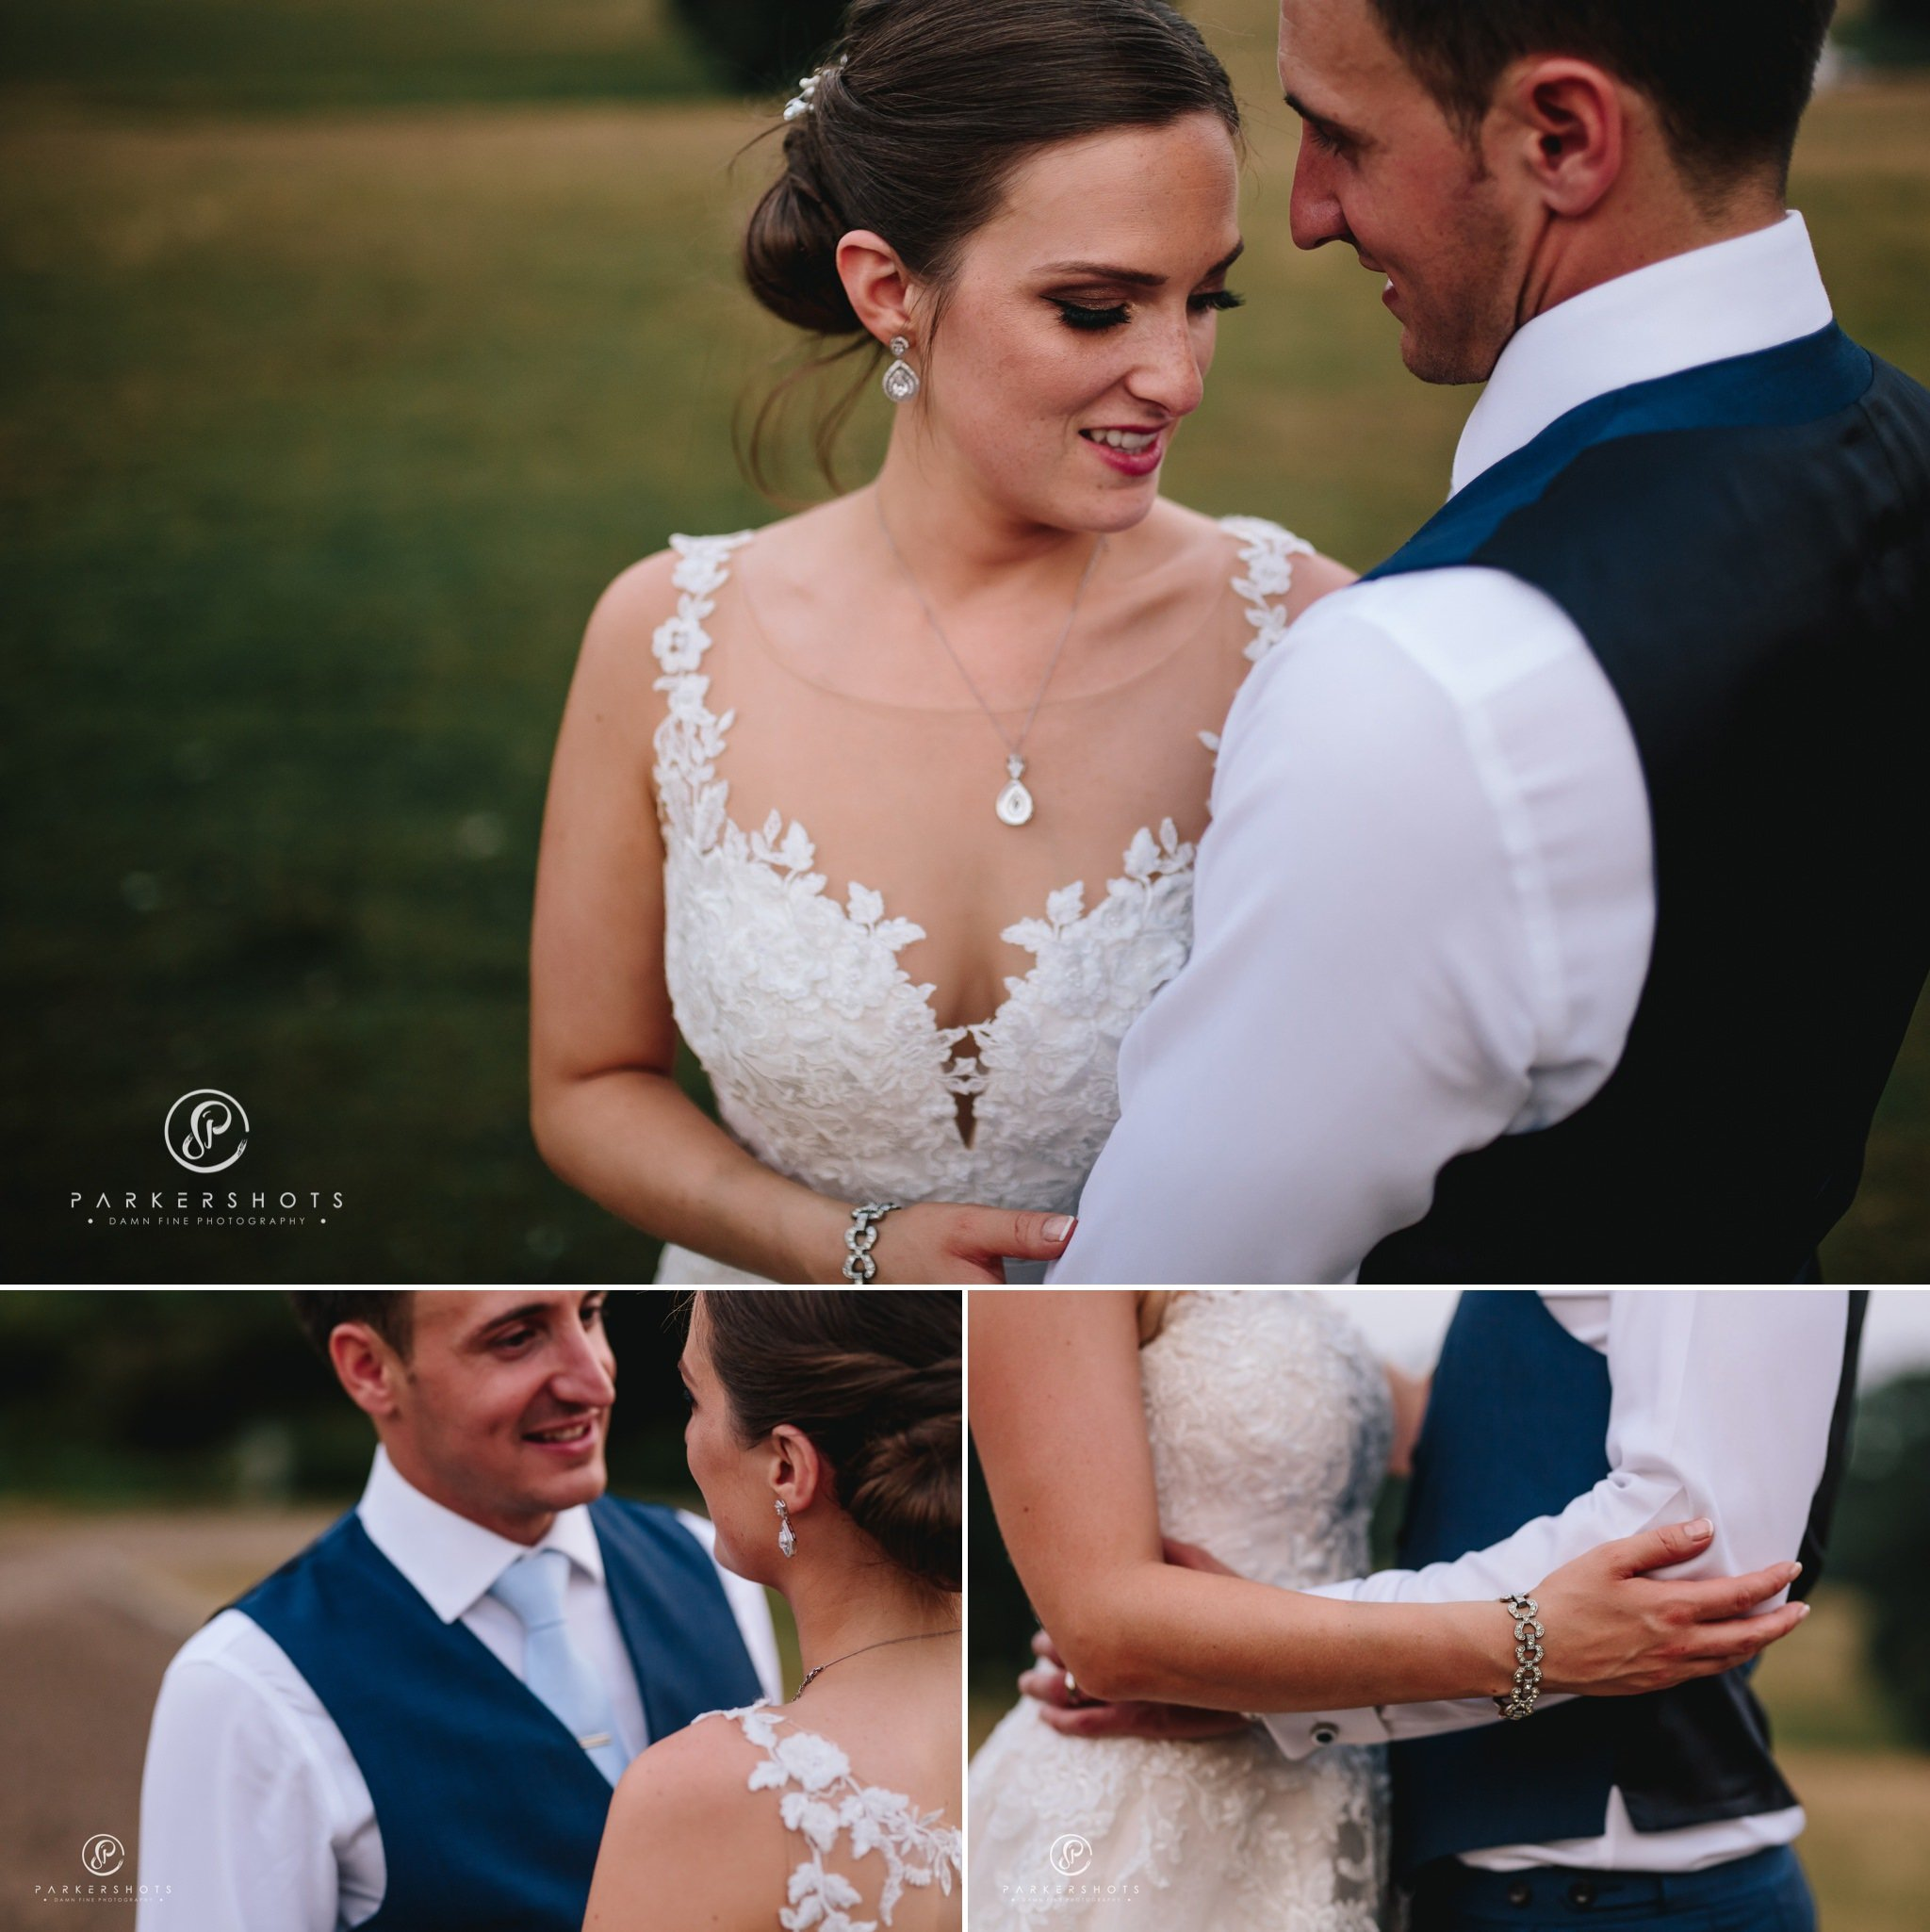 Wadhurst Castle Wedding Photographer - Evening portraits of bride and groom